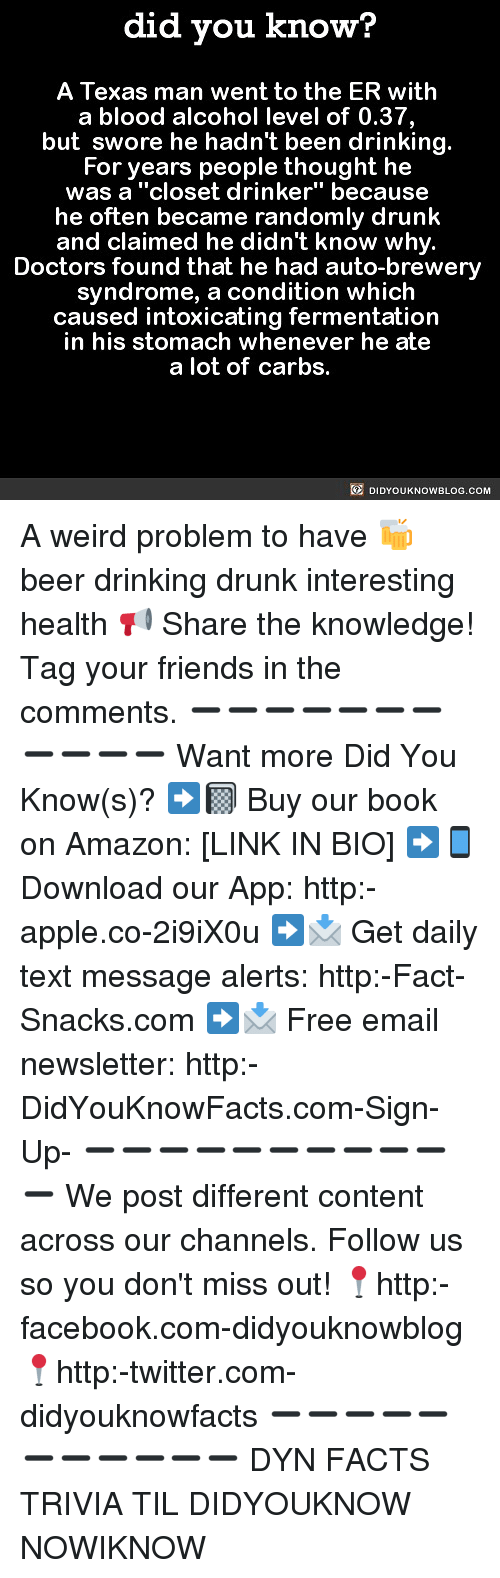 """Amazon, Apple, and Beer: did you know?  A Texas man went to the ER with  a blood alcohol level of 0.37,  but swore he hadn't been drinking.  For years people thought he  was a """"closet drinker"""" because  he often became randomly drunk  and claimed he didn't know why.  Doctors found that he had auto-brewery  syndrome, a condition which  caused intoxicating fermentation  in his stomach whenever he ate  a lot of carbs.  DIDYOUKNOWBLOG.COM A weird problem to have 🍻 beer drinking drunk interesting health 📢 Share the knowledge! Tag your friends in the comments. ➖➖➖➖➖➖➖➖➖➖➖ Want more Did You Know(s)? ➡📓 Buy our book on Amazon: [LINK IN BIO] ➡📱 Download our App: http:-apple.co-2i9iX0u ➡📩 Get daily text message alerts: http:-Fact-Snacks.com ➡📩 Free email newsletter: http:-DidYouKnowFacts.com-Sign-Up- ➖➖➖➖➖➖➖➖➖➖➖ We post different content across our channels. Follow us so you don't miss out! 📍http:-facebook.com-didyouknowblog 📍http:-twitter.com-didyouknowfacts ➖➖➖➖➖➖➖➖➖➖➖ DYN FACTS TRIVIA TIL DIDYOUKNOW NOWIKNOW"""